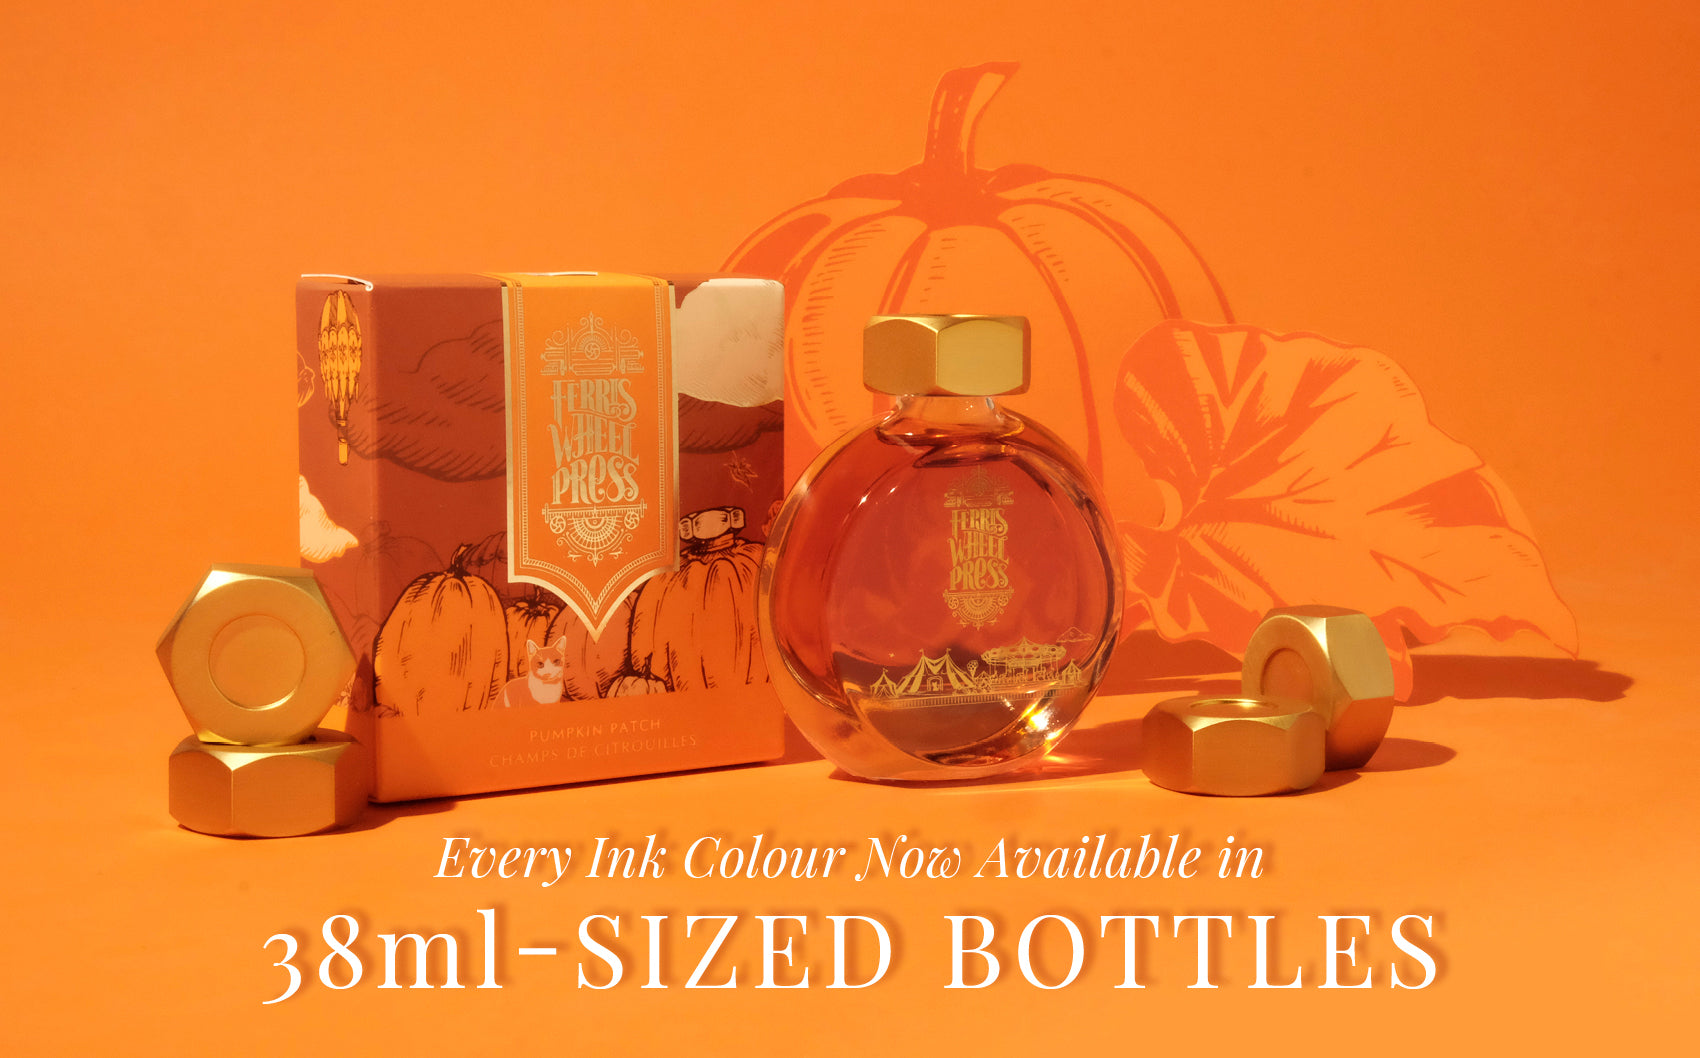 A 38mL of orange ink with the Ferris Wheel Press logo in gold surrounded by paper cut outs of hand-drawn pumpkins.